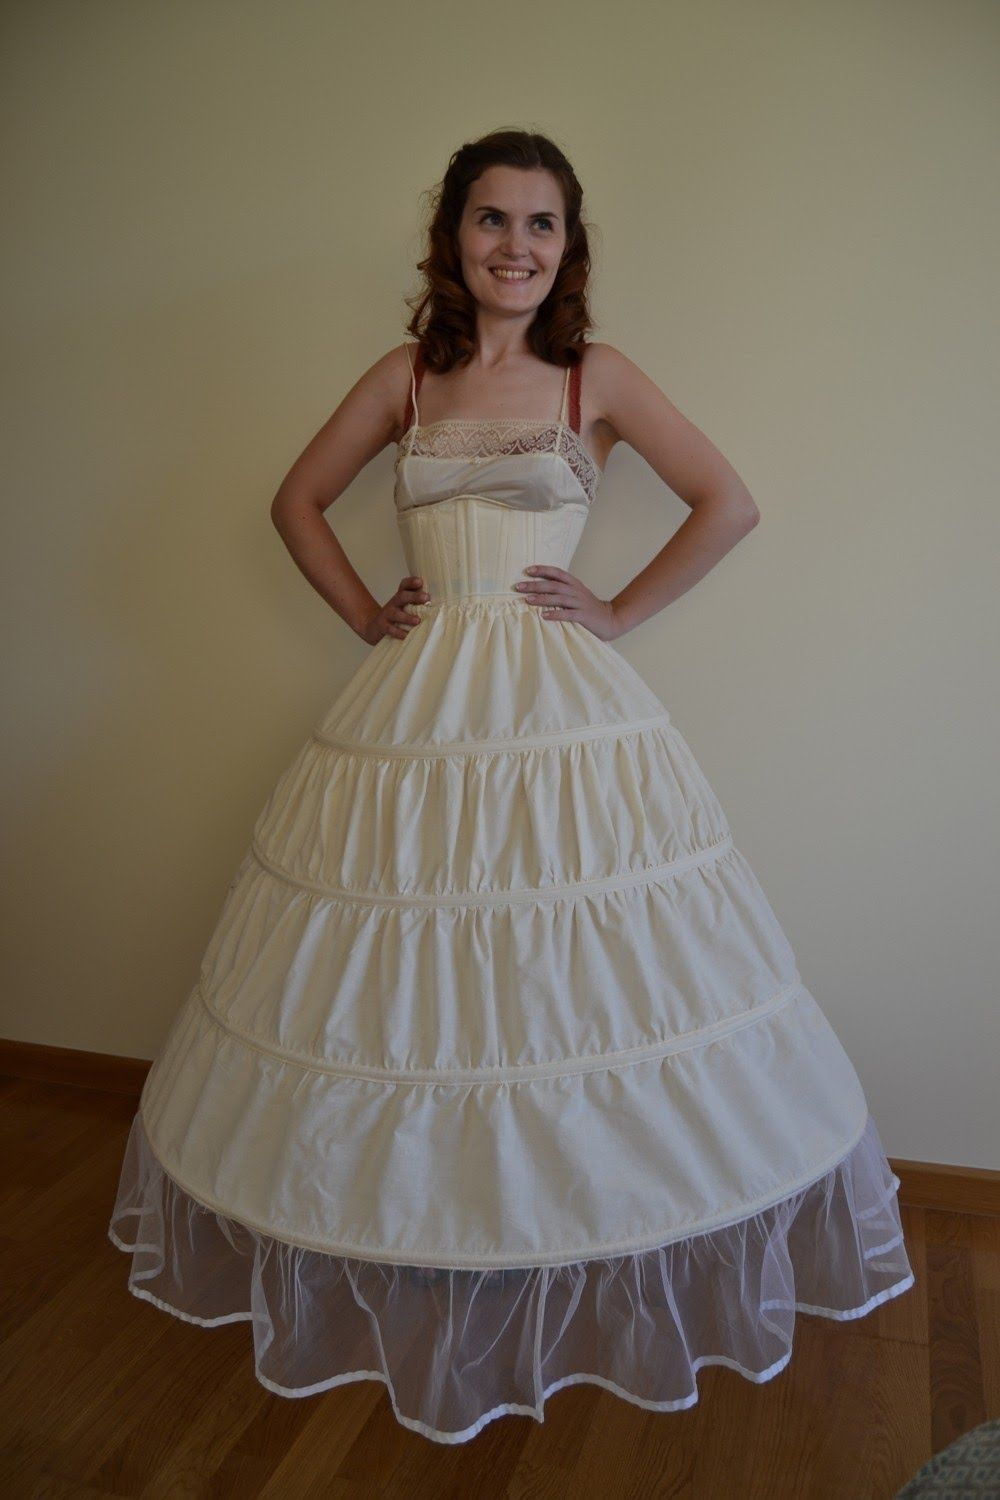 How to make a hoop skirt how to sew a pageant dress and more